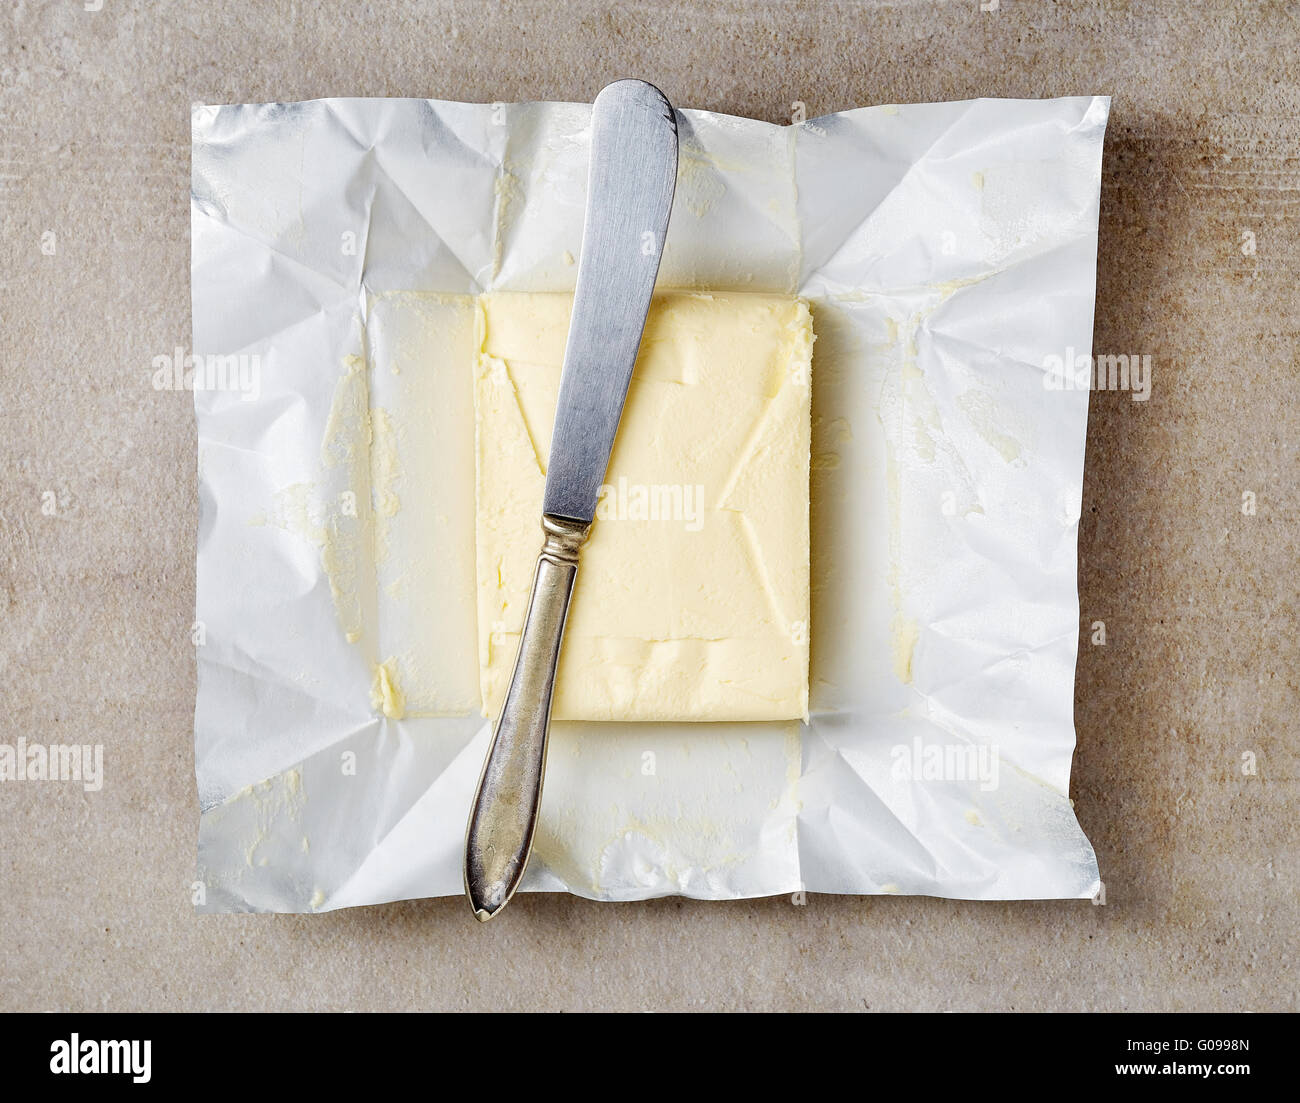 Butter package with knife, top view - Stock Image